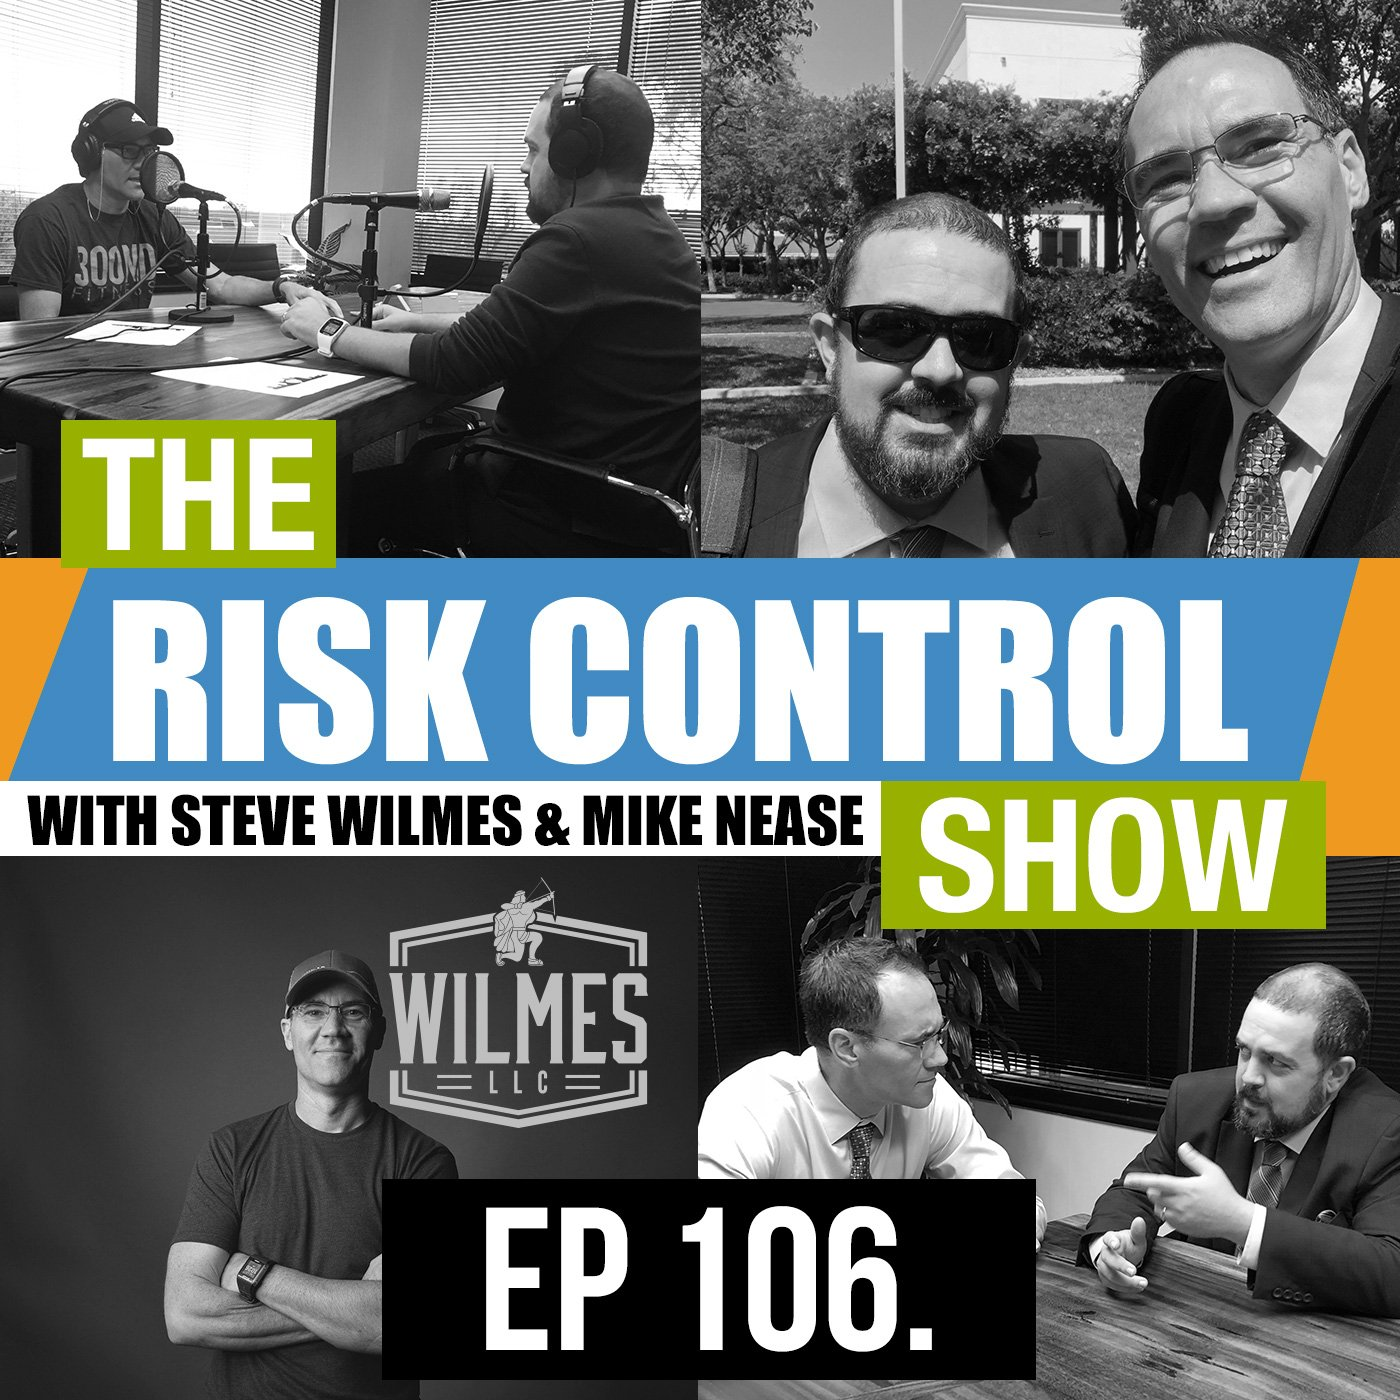 The Risk Control Show Episode 106